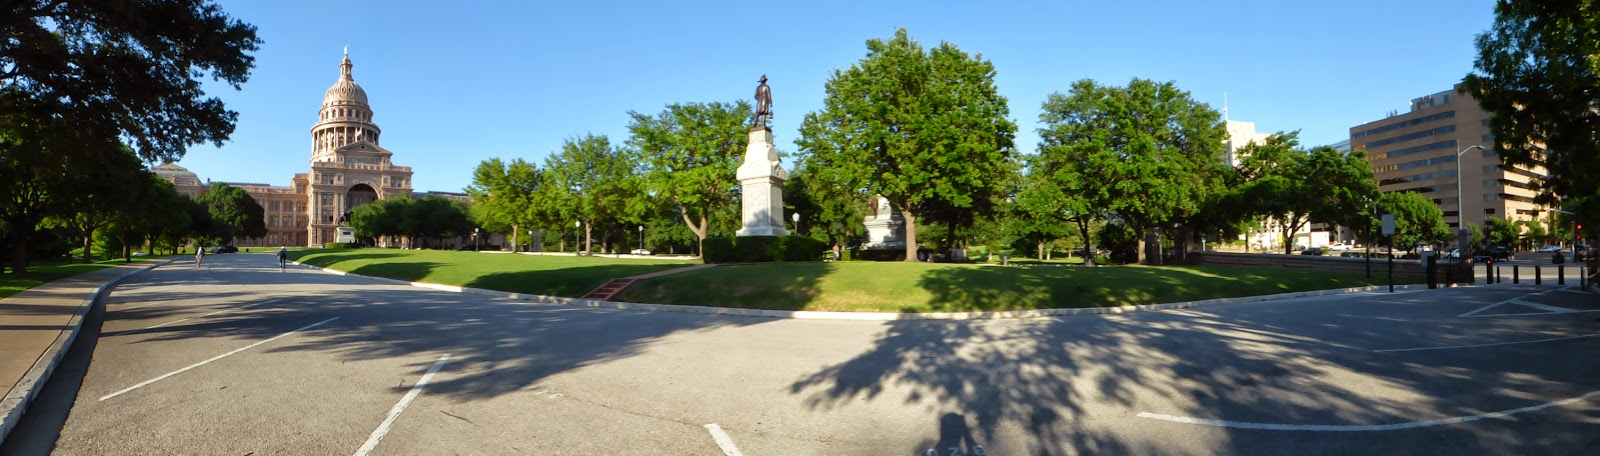 panoramic of the state capitol building